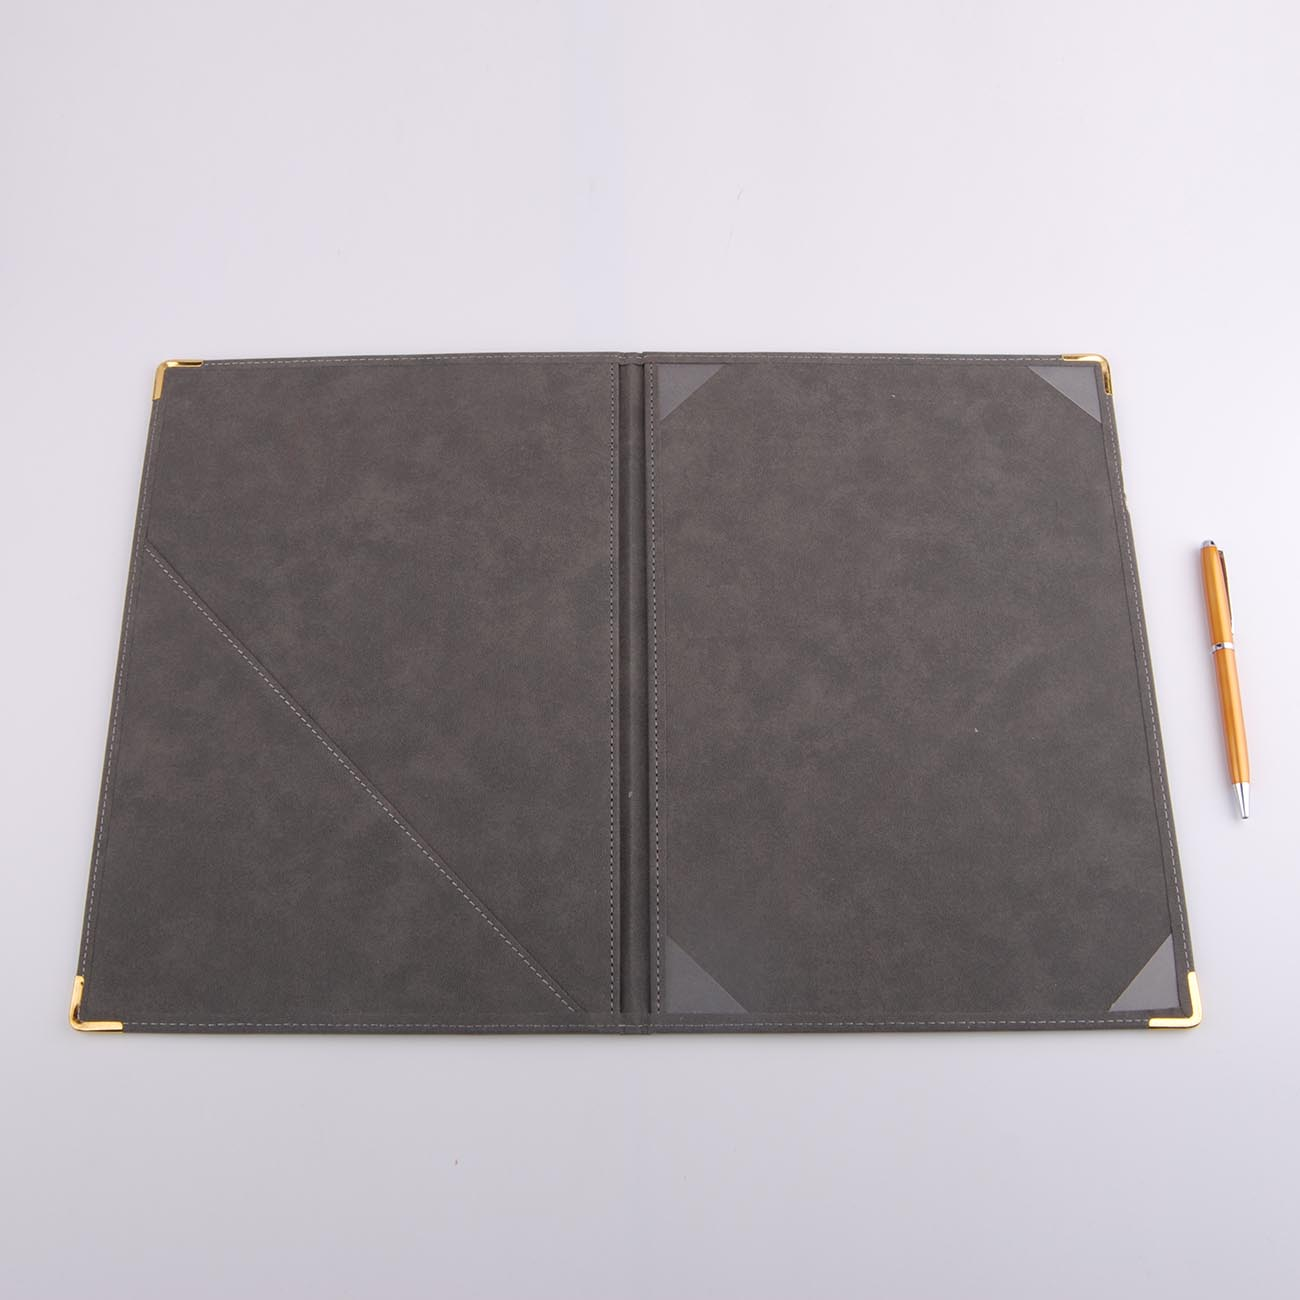 http://www.best-notebook.com/data/images/product/20170904114556_399.jpg